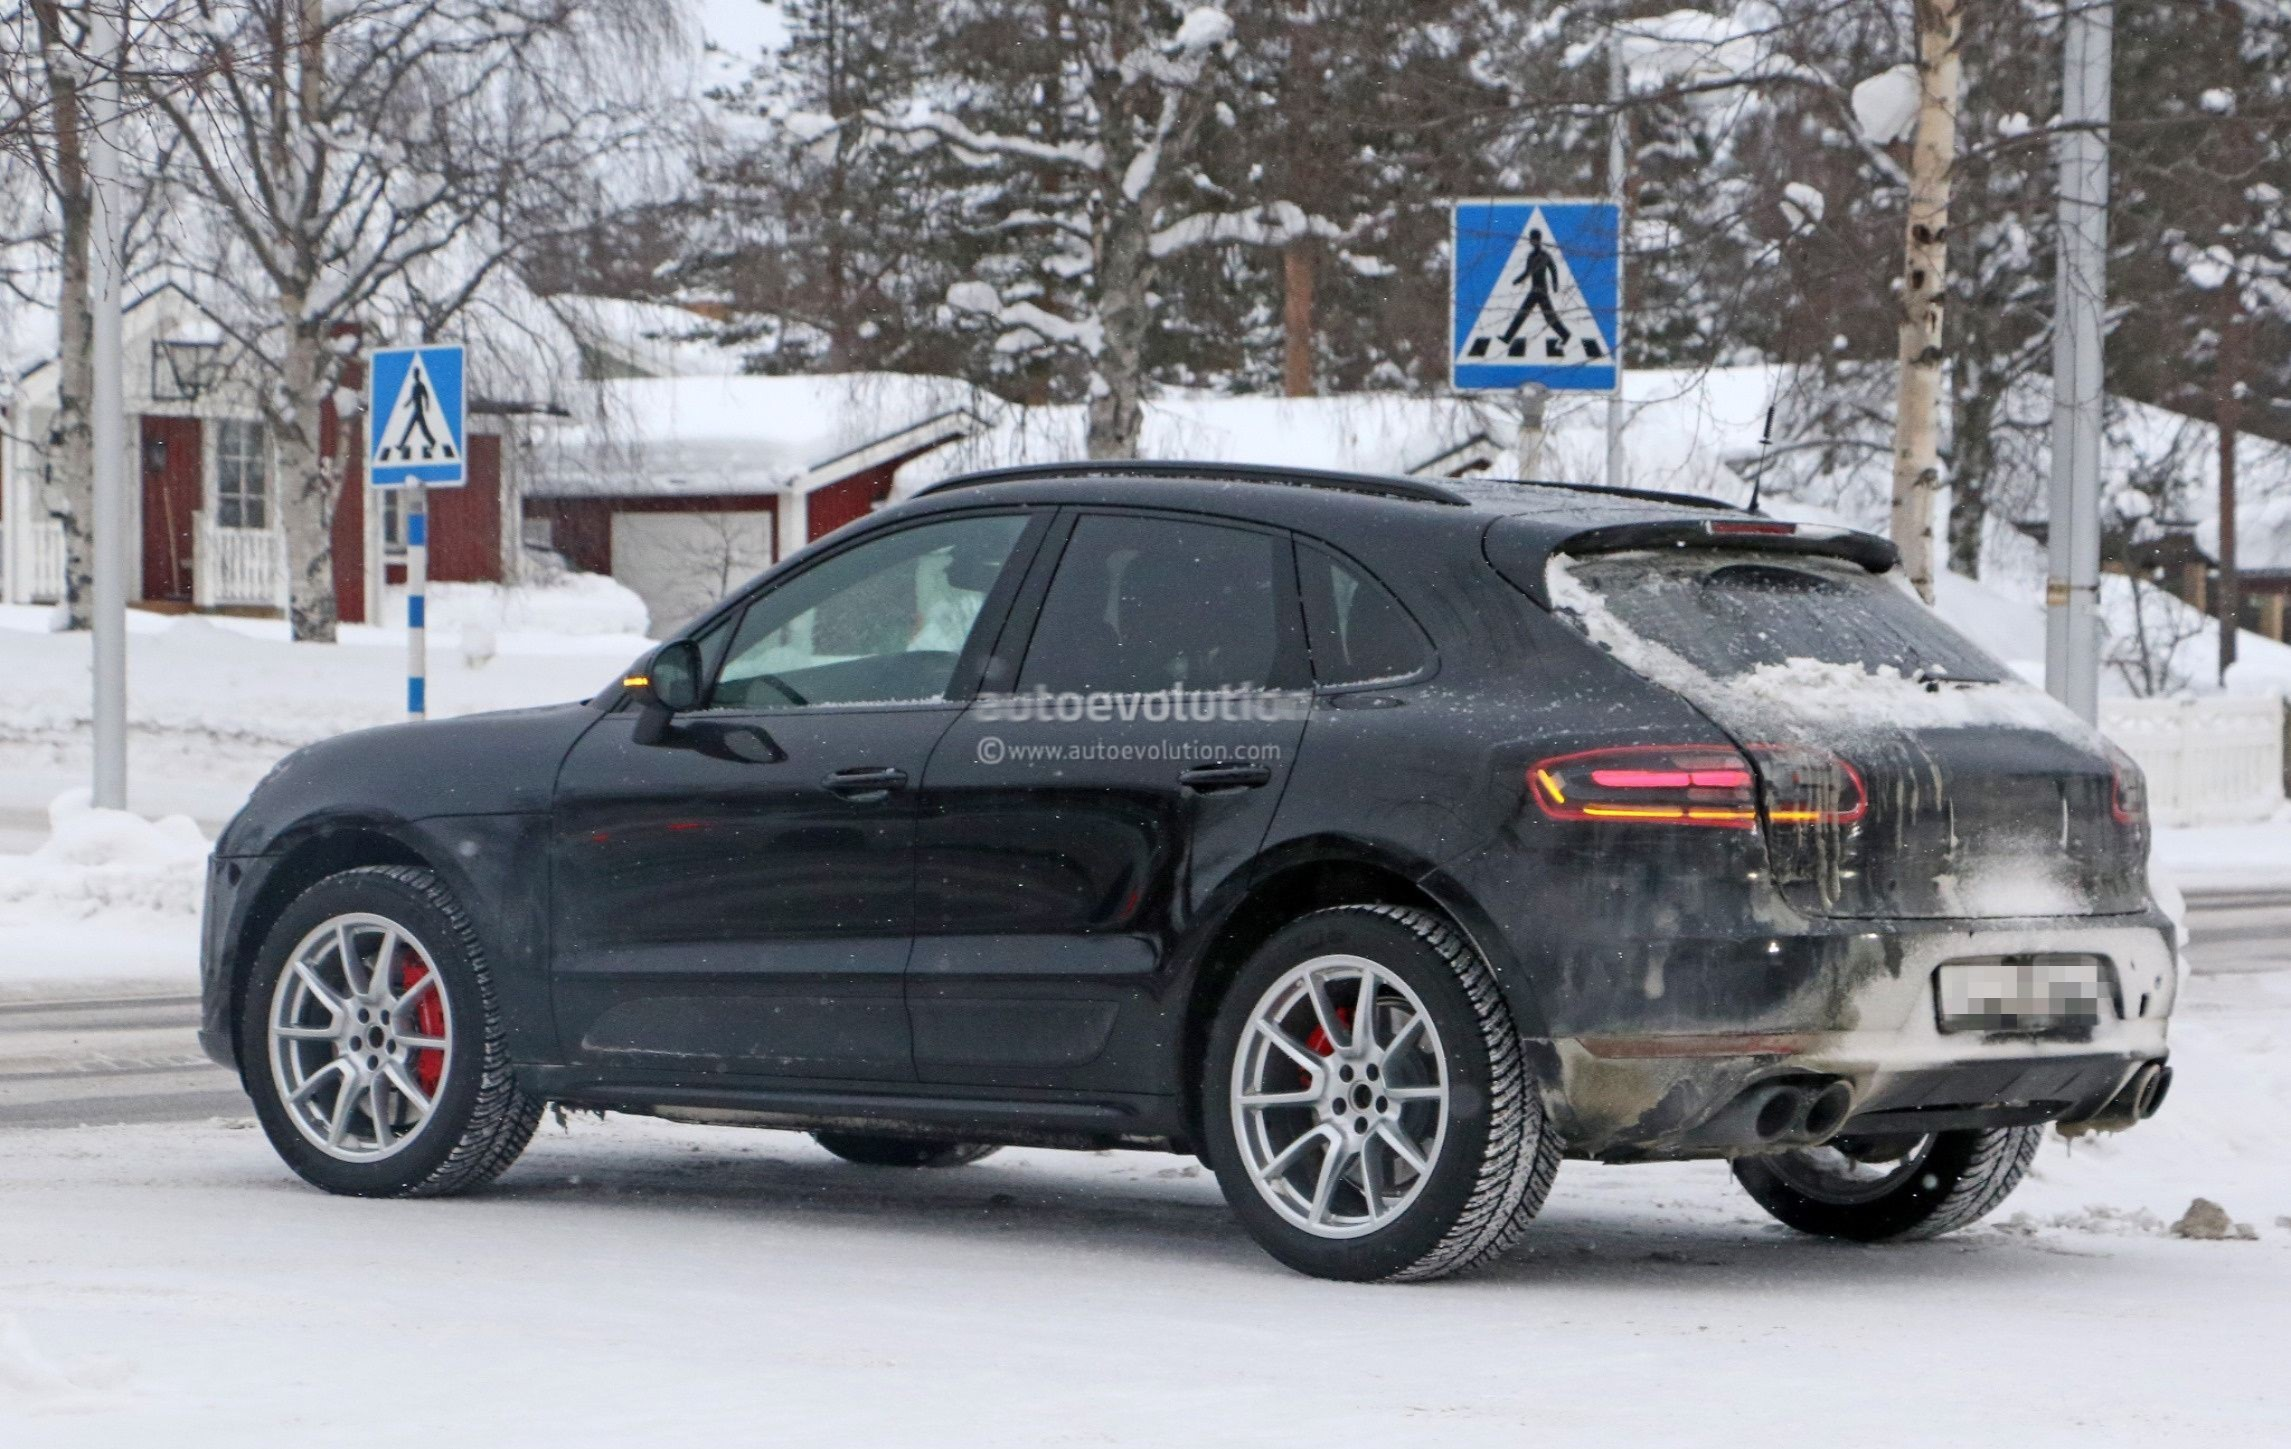 Spyshots 2019 Porsche Macan Facelift Shows Off Interior Design